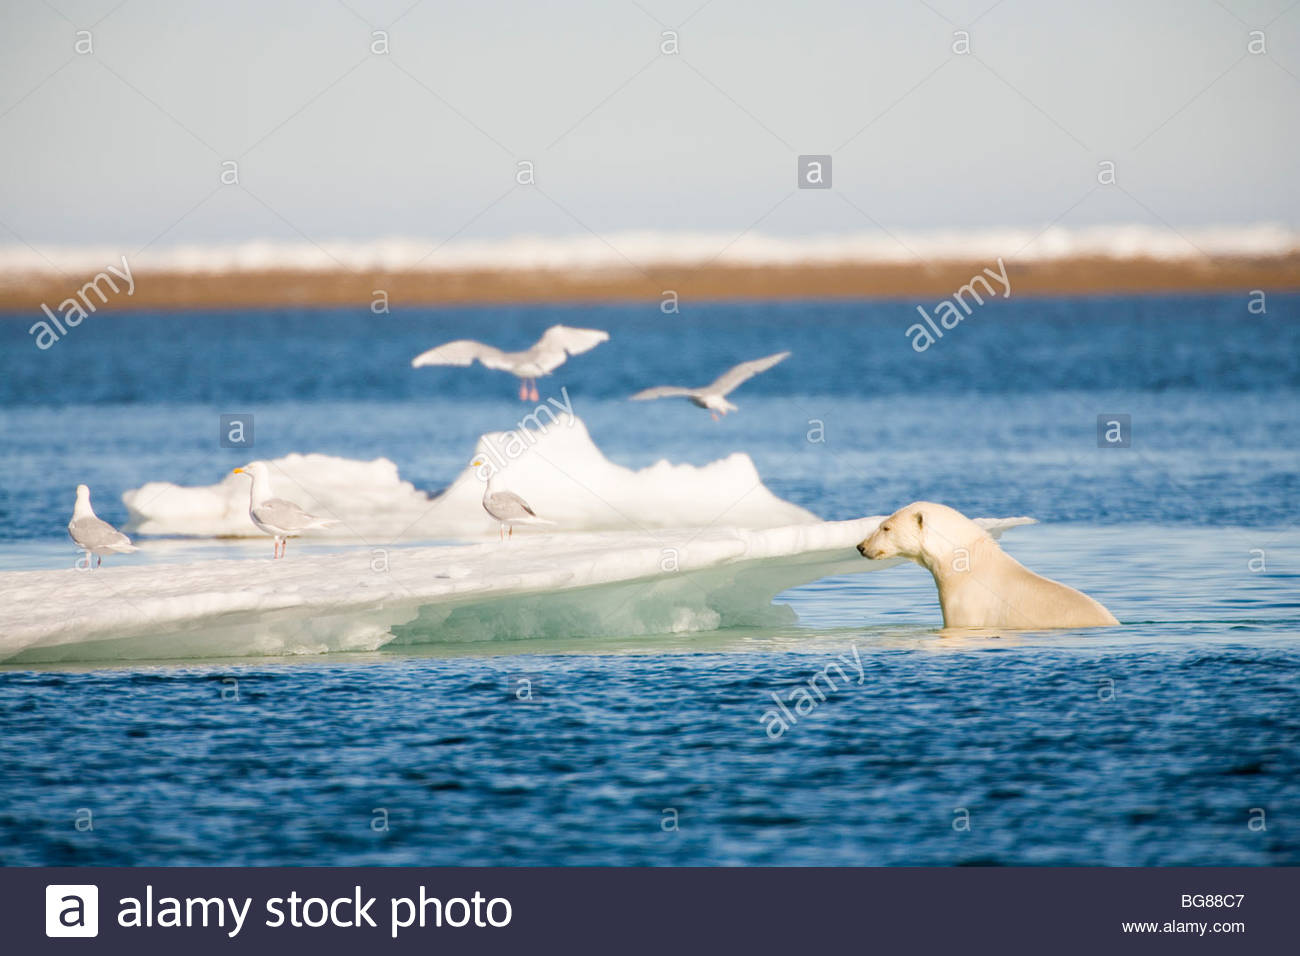 A polar bear climbs onto an iceberg in the Beaufort Sea off the coastline of ANWR - Stock Image